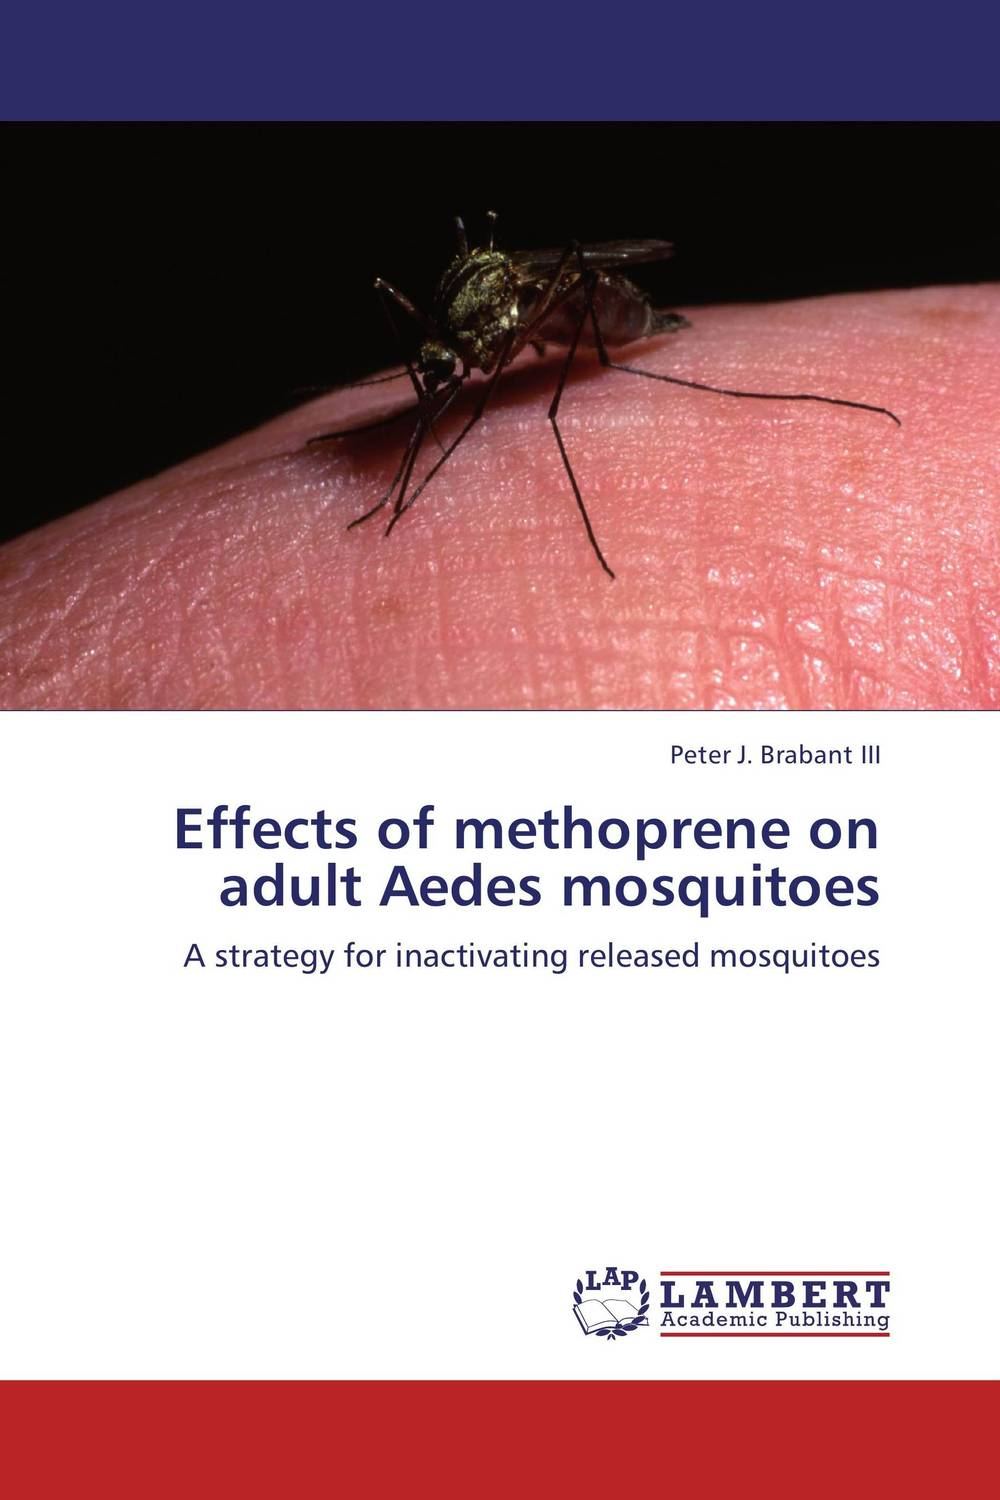 Effects of methoprene on adult Aedes mosquitoes no side effects laser light treatment female vaginal tightening adult healthcare product for delay menopause